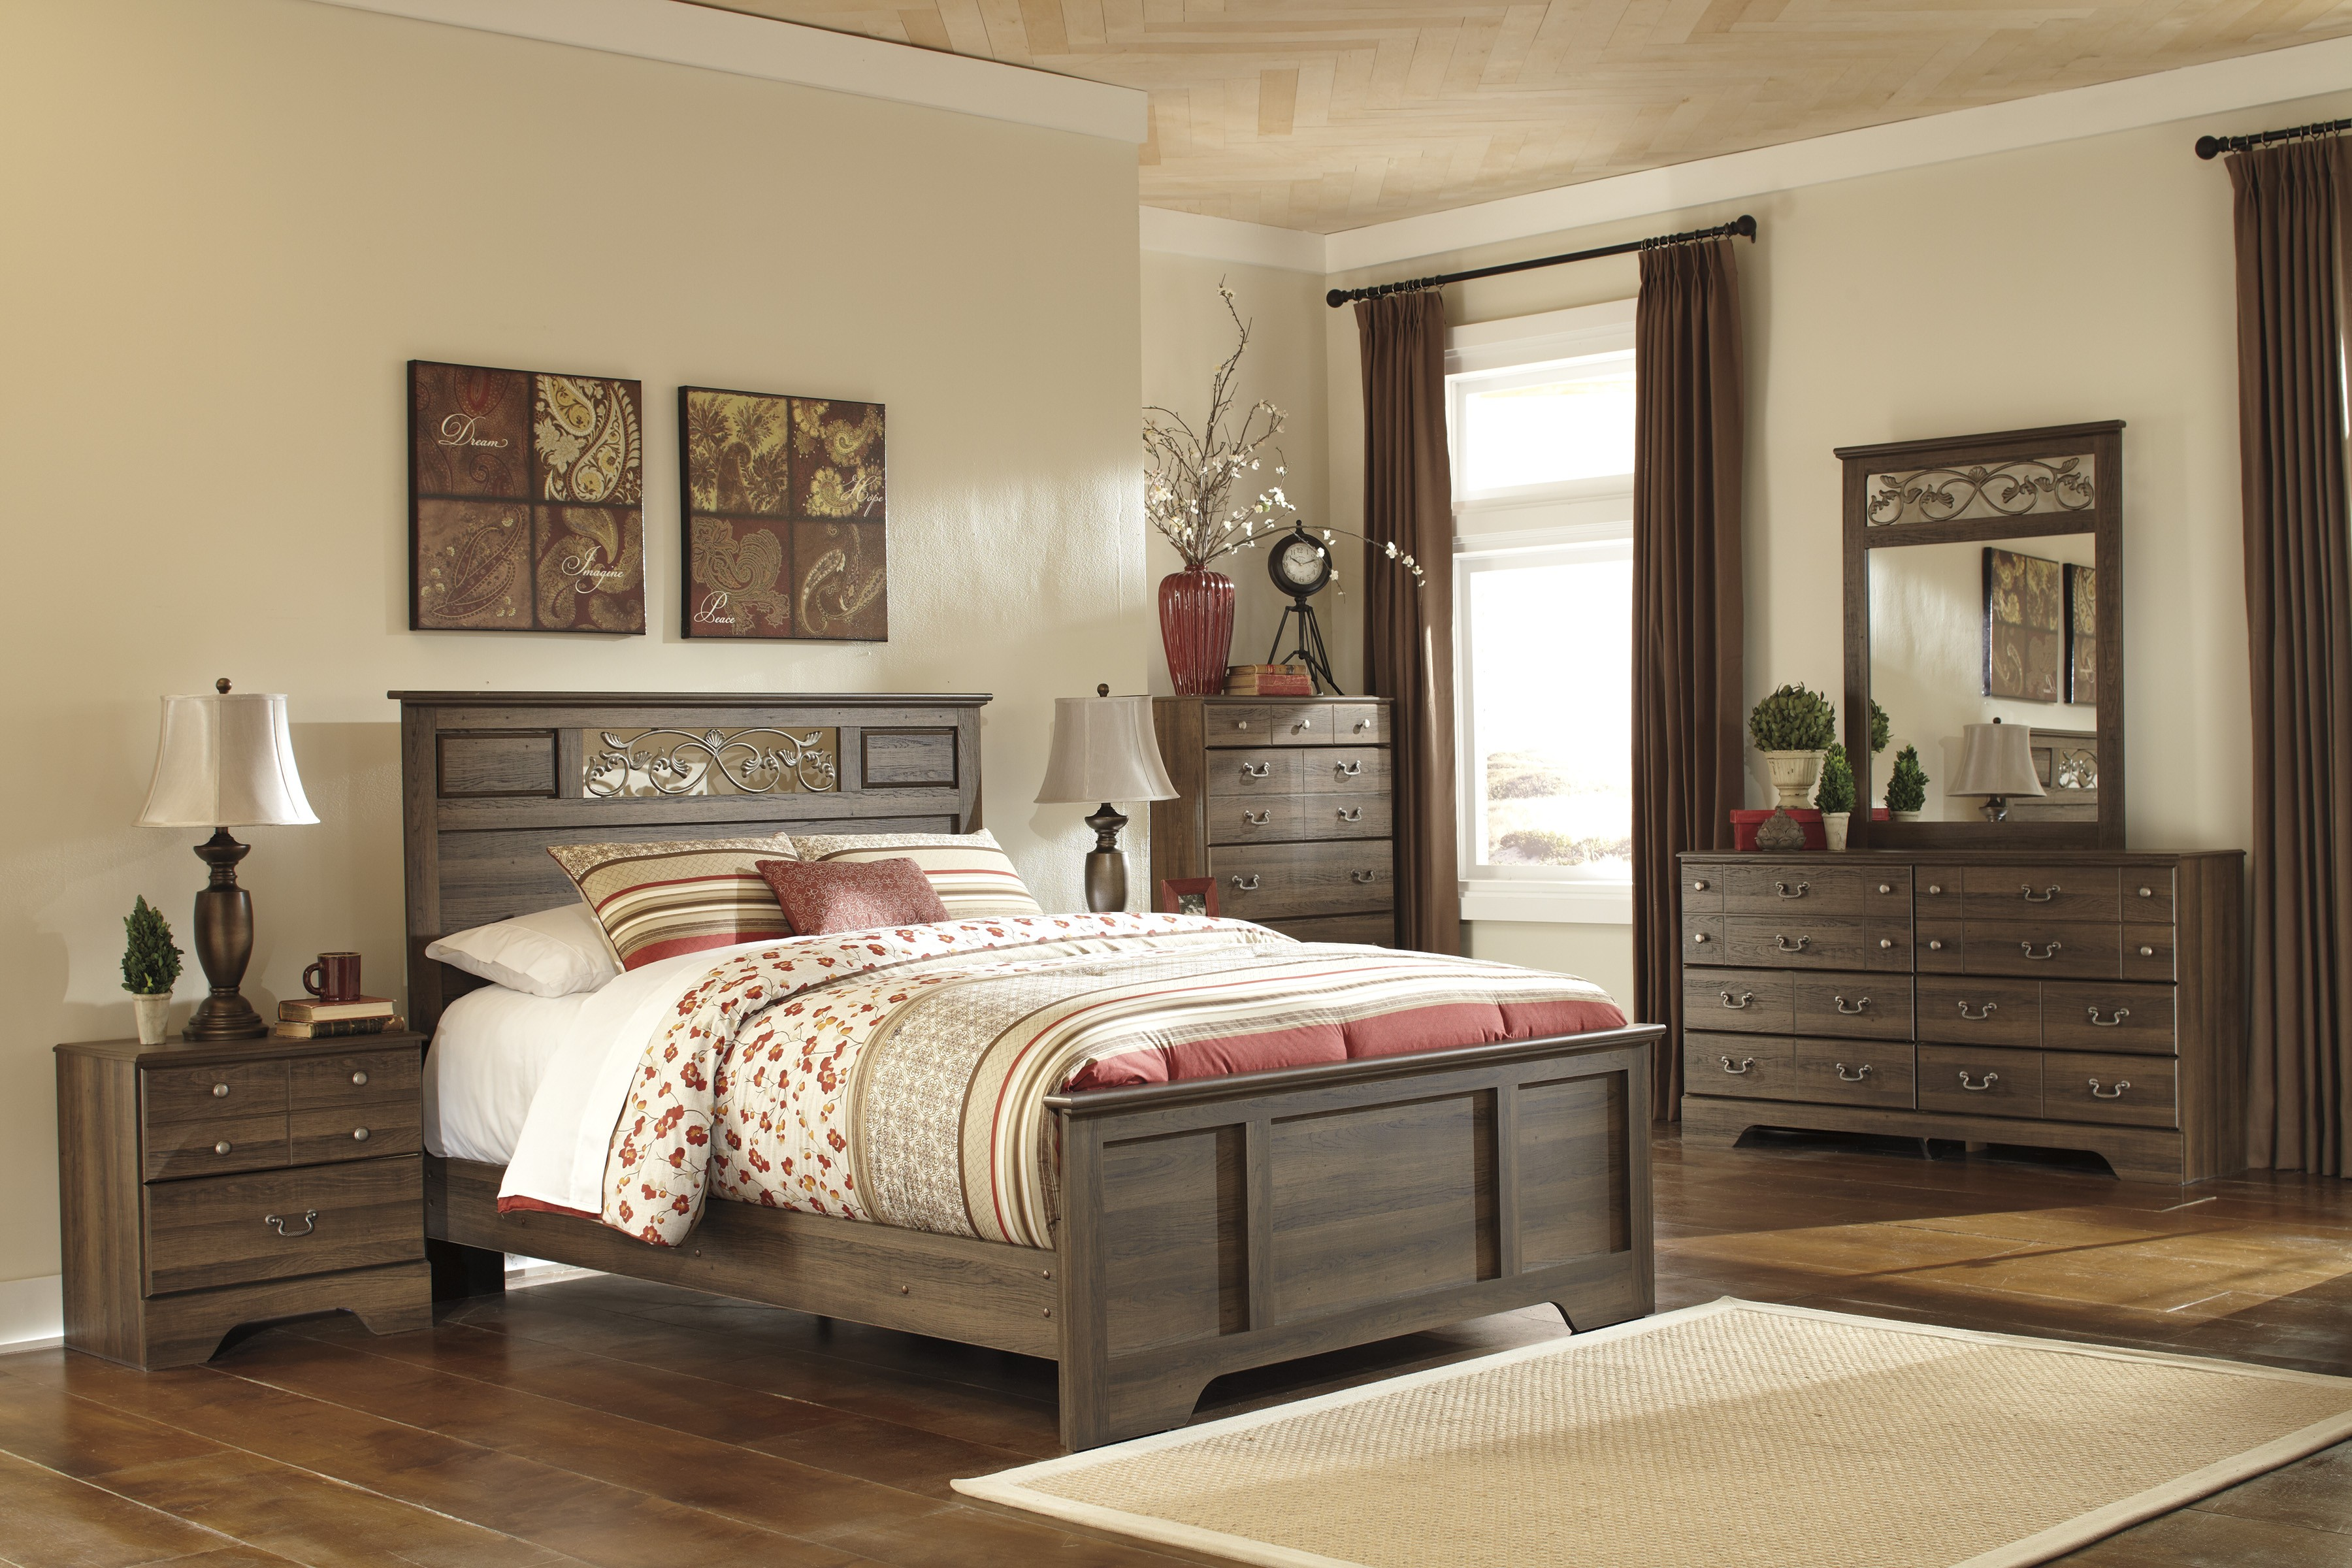 Allymore Panel Bedroom Set From Ashley B216 55 51 98 Coleman Furniture